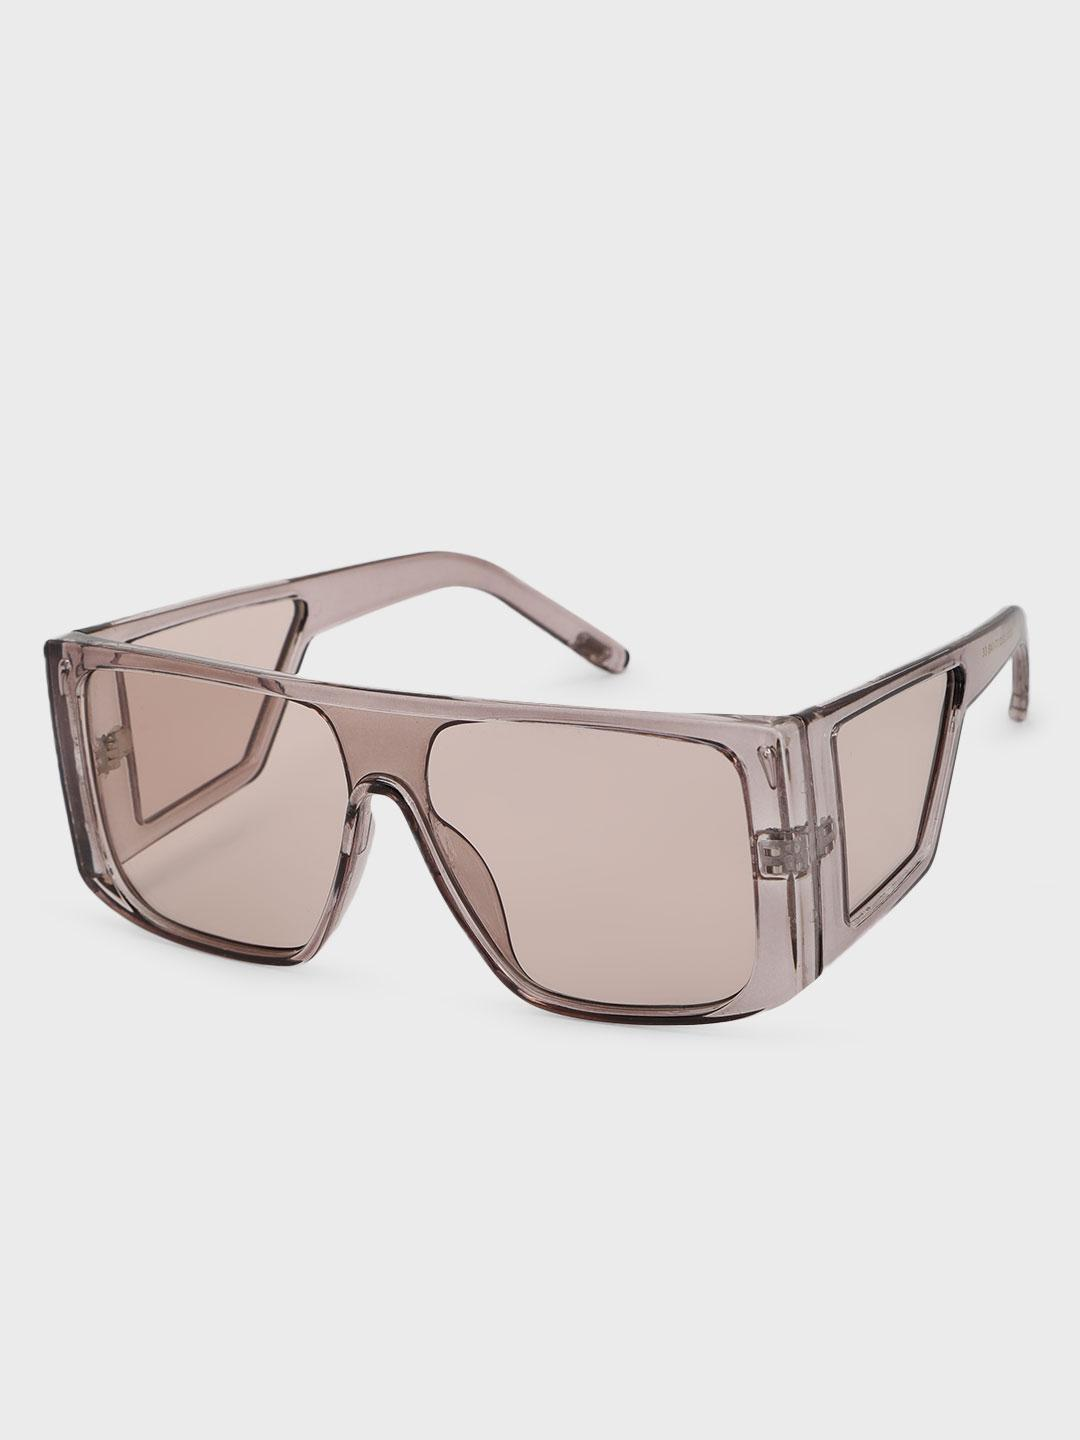 Pataaka Grey Tinted Lens Broad Square Sunglasses 1